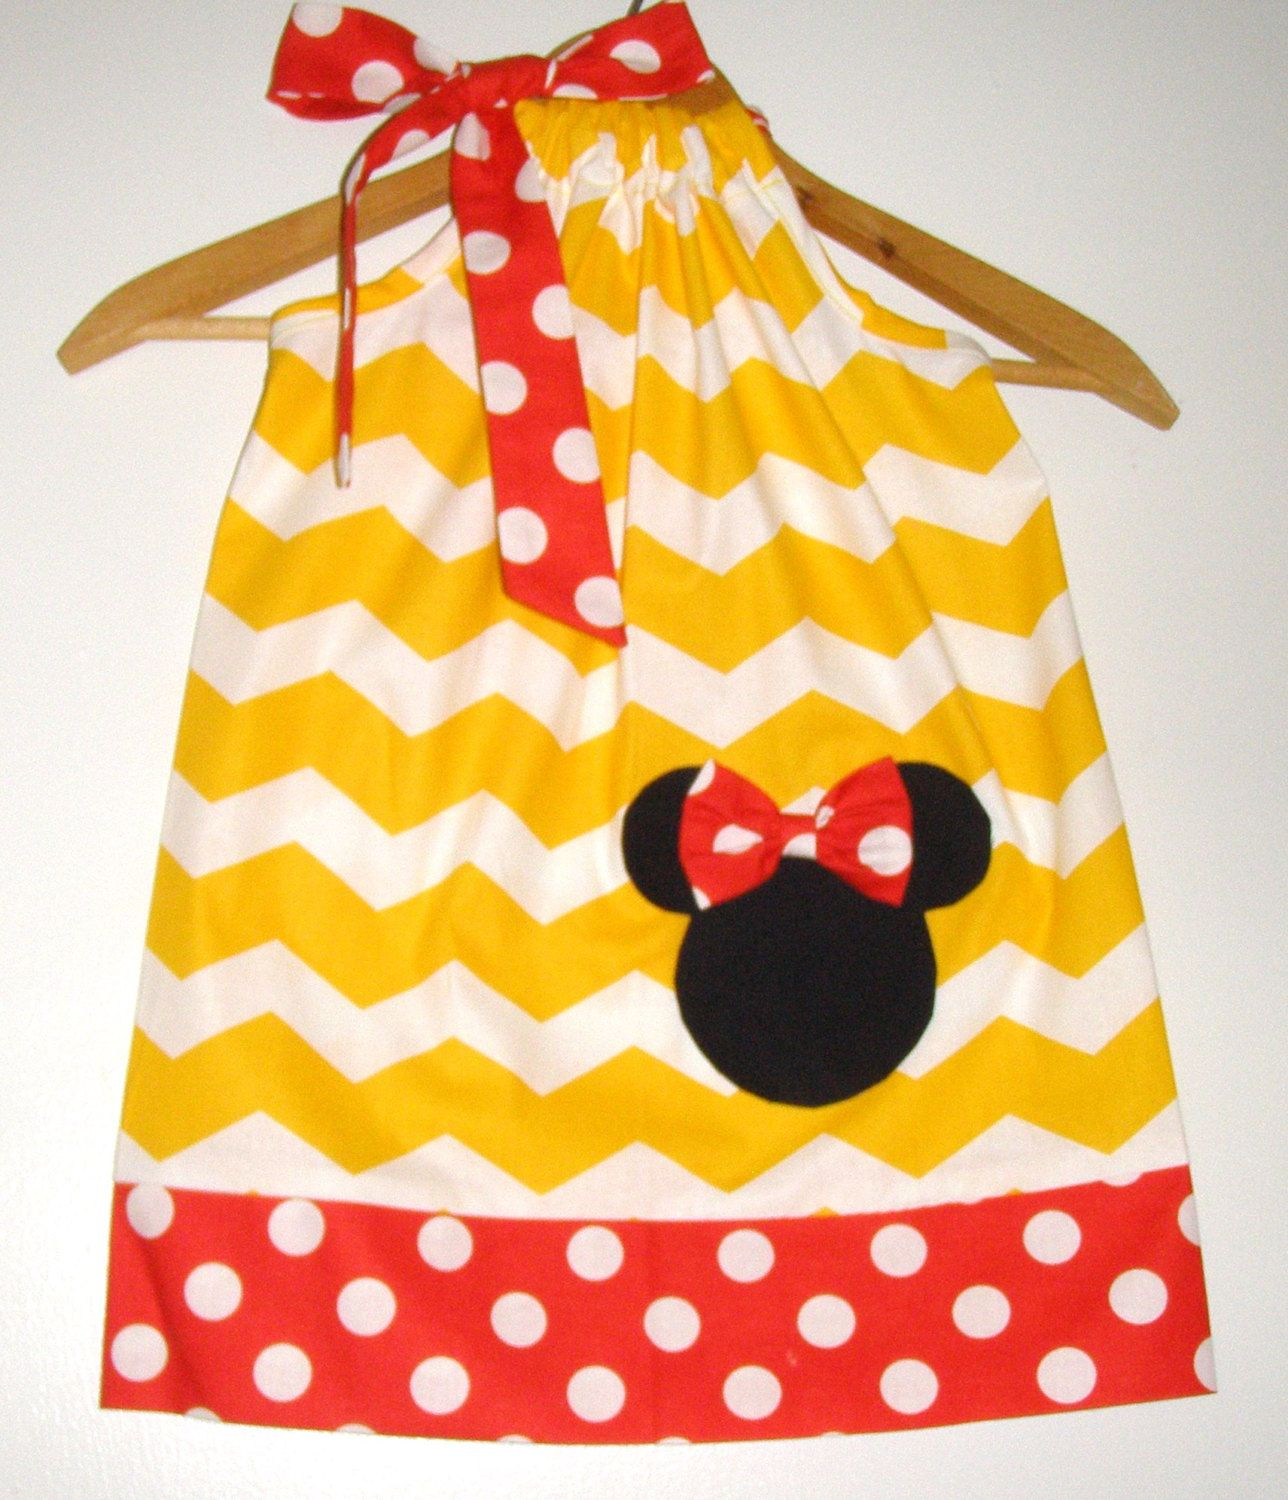 Minnie Yellow white chevron red dots pillowcase dress appliqued Disney clothing 3691218 months 2t 3t 4t5t6789101214